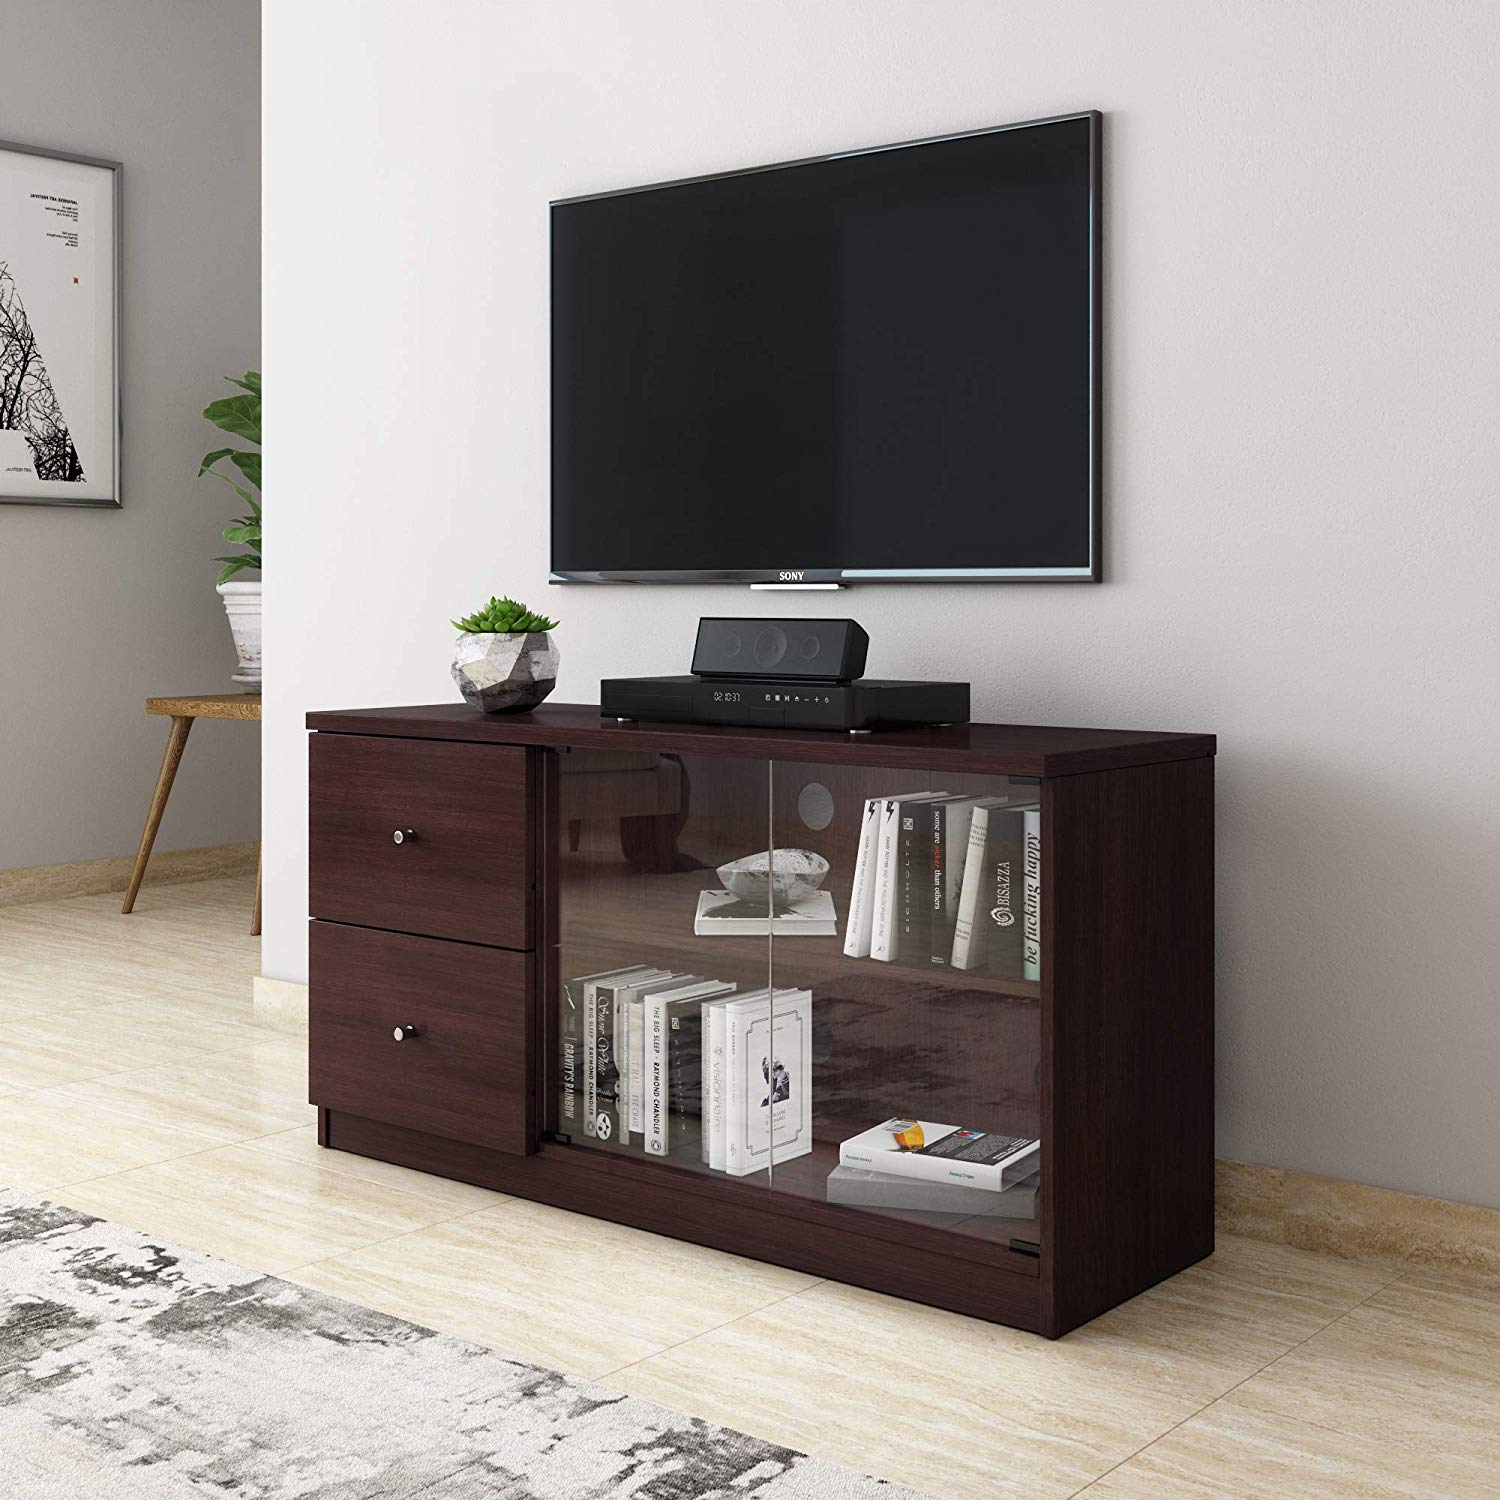 Furniture photography in delhi 025